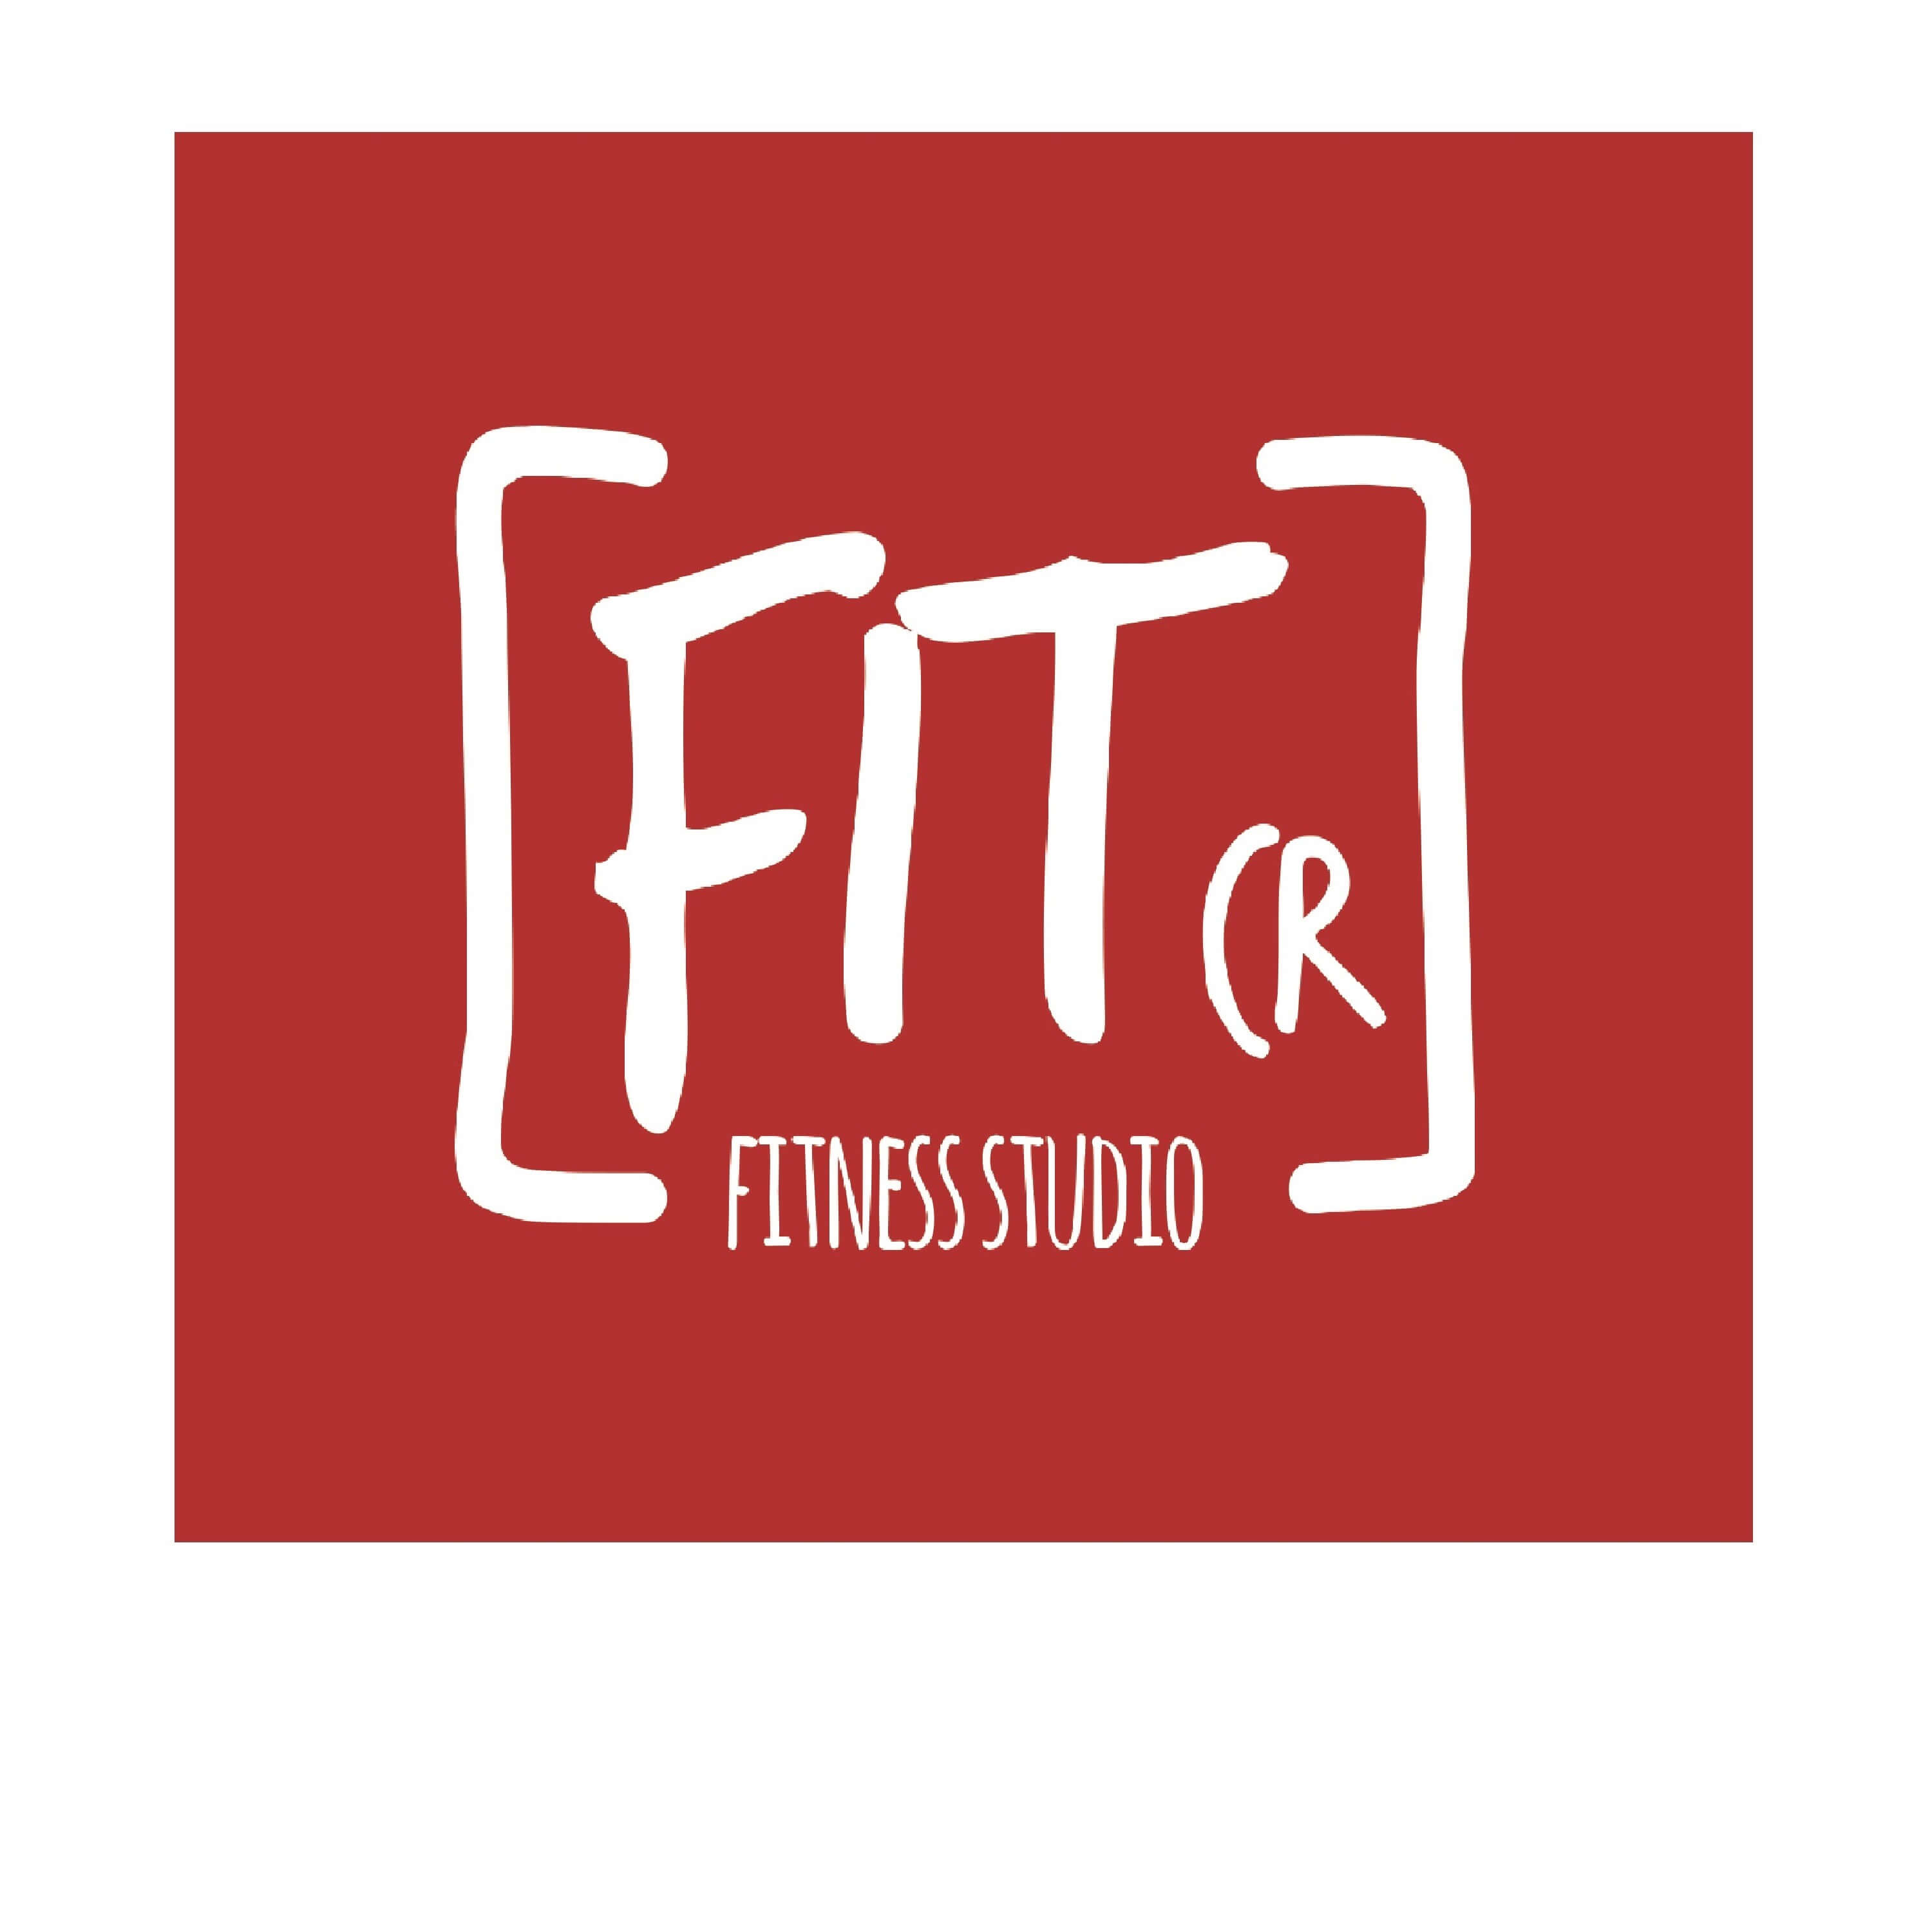 Fit CR